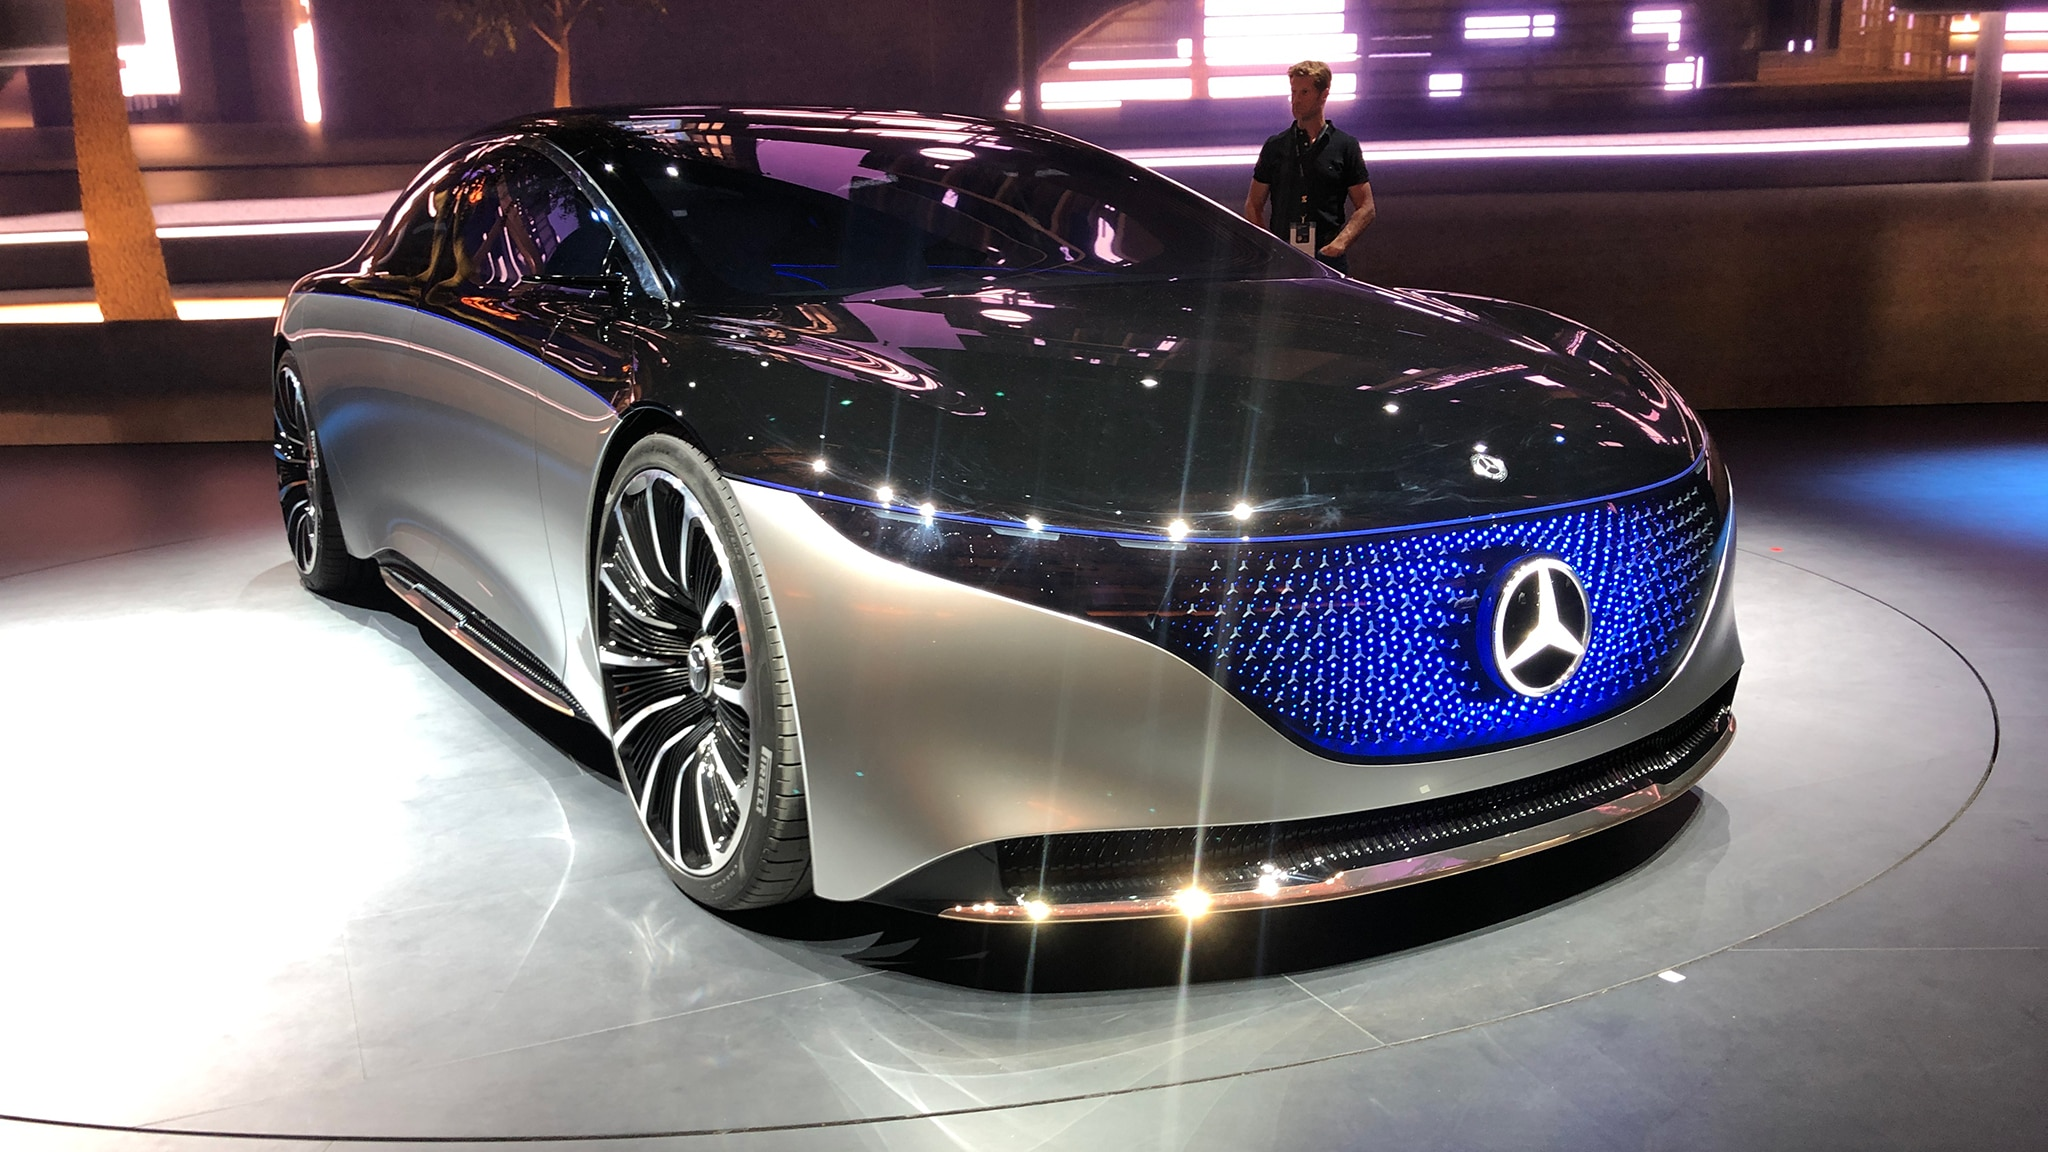 mercedes-benz eqs concept  paving the way to an electric s-class